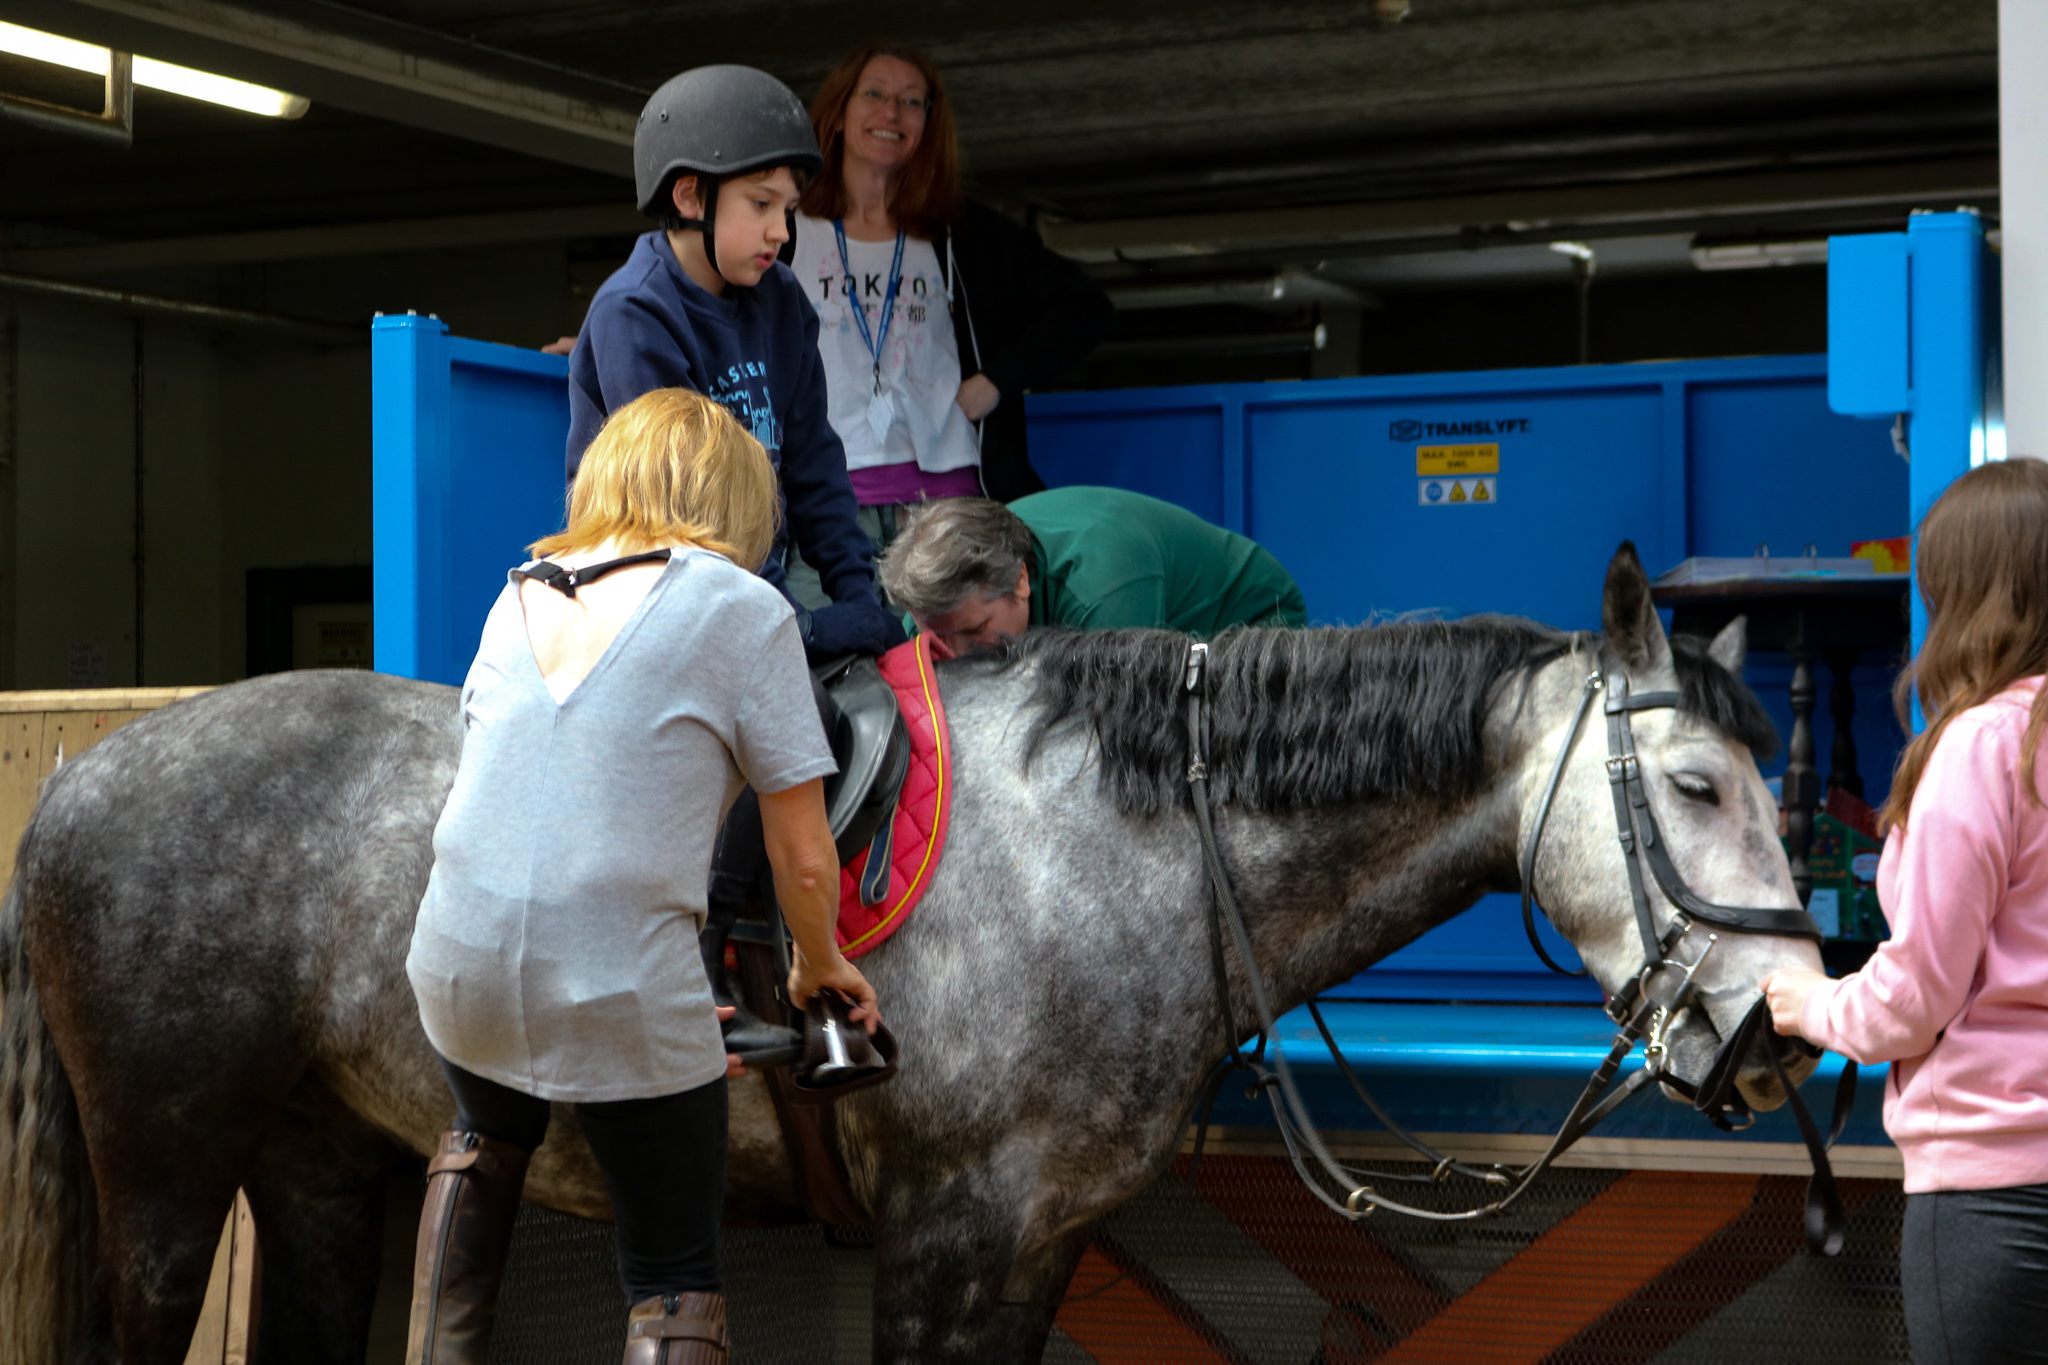 An image of someone using the lift to mount the horse